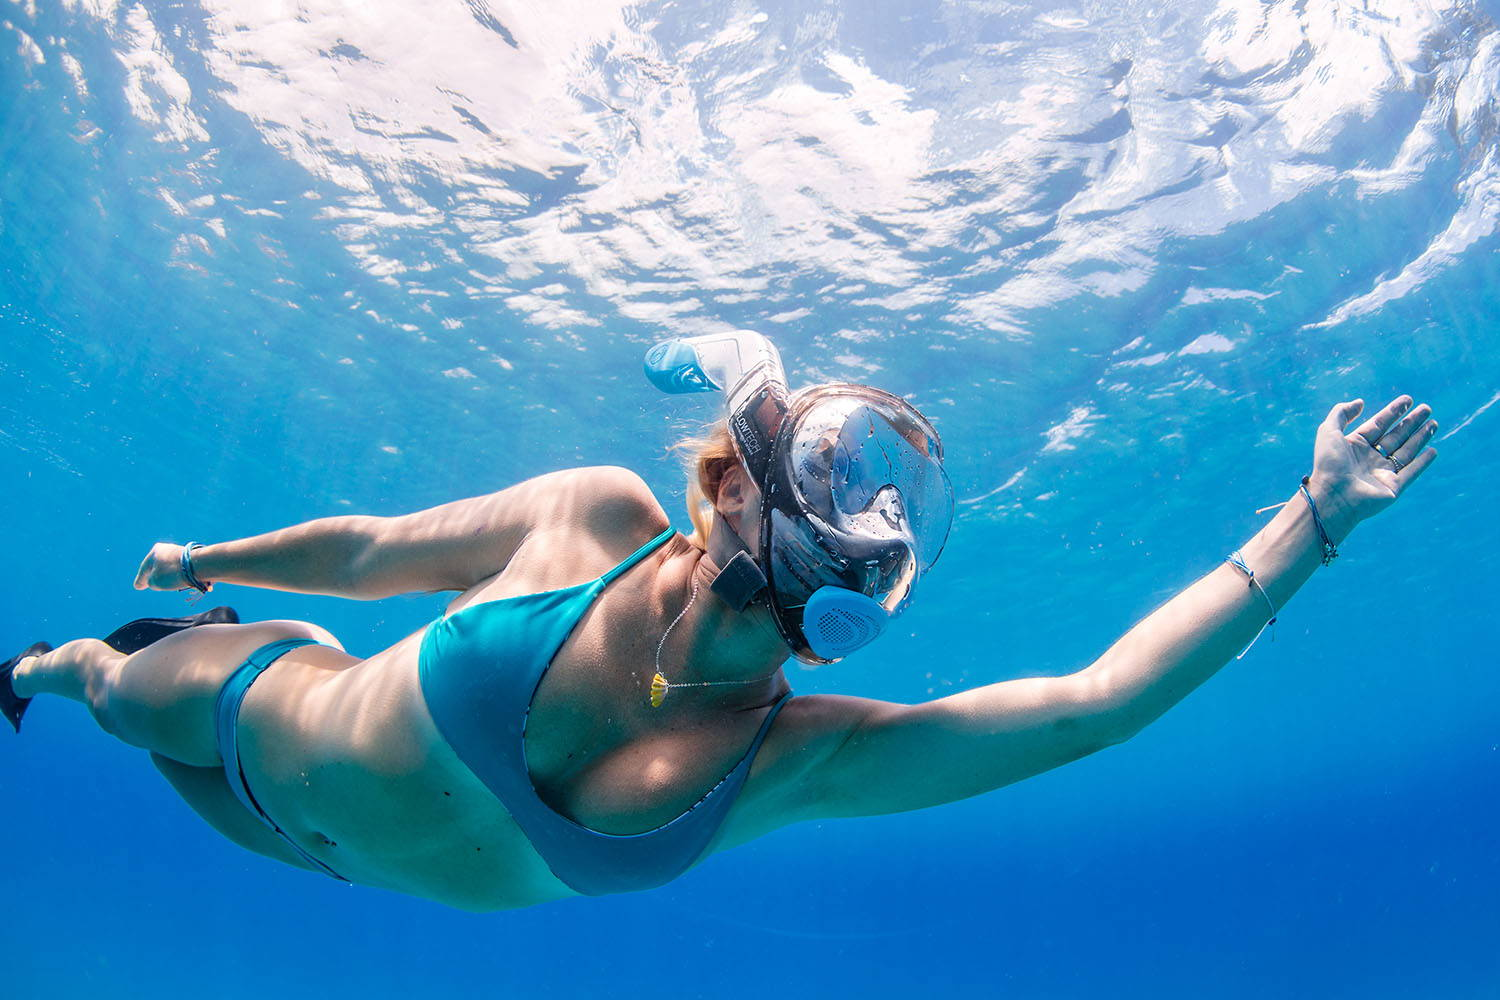 Full Face Snorkel Mask VS. Traditional: Which One Is Better?